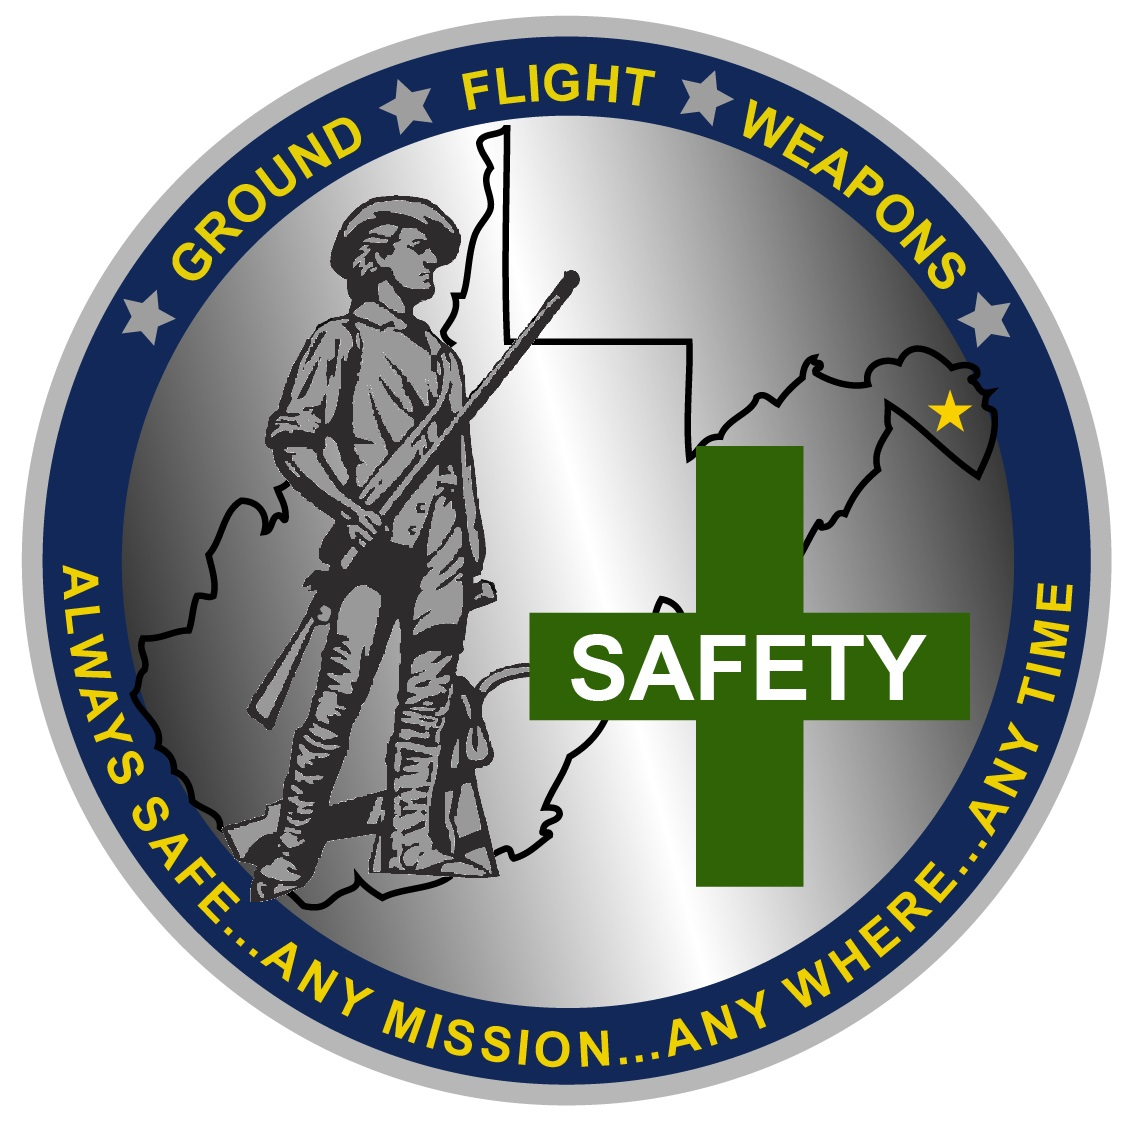 167 AW Ground Safety Assessment